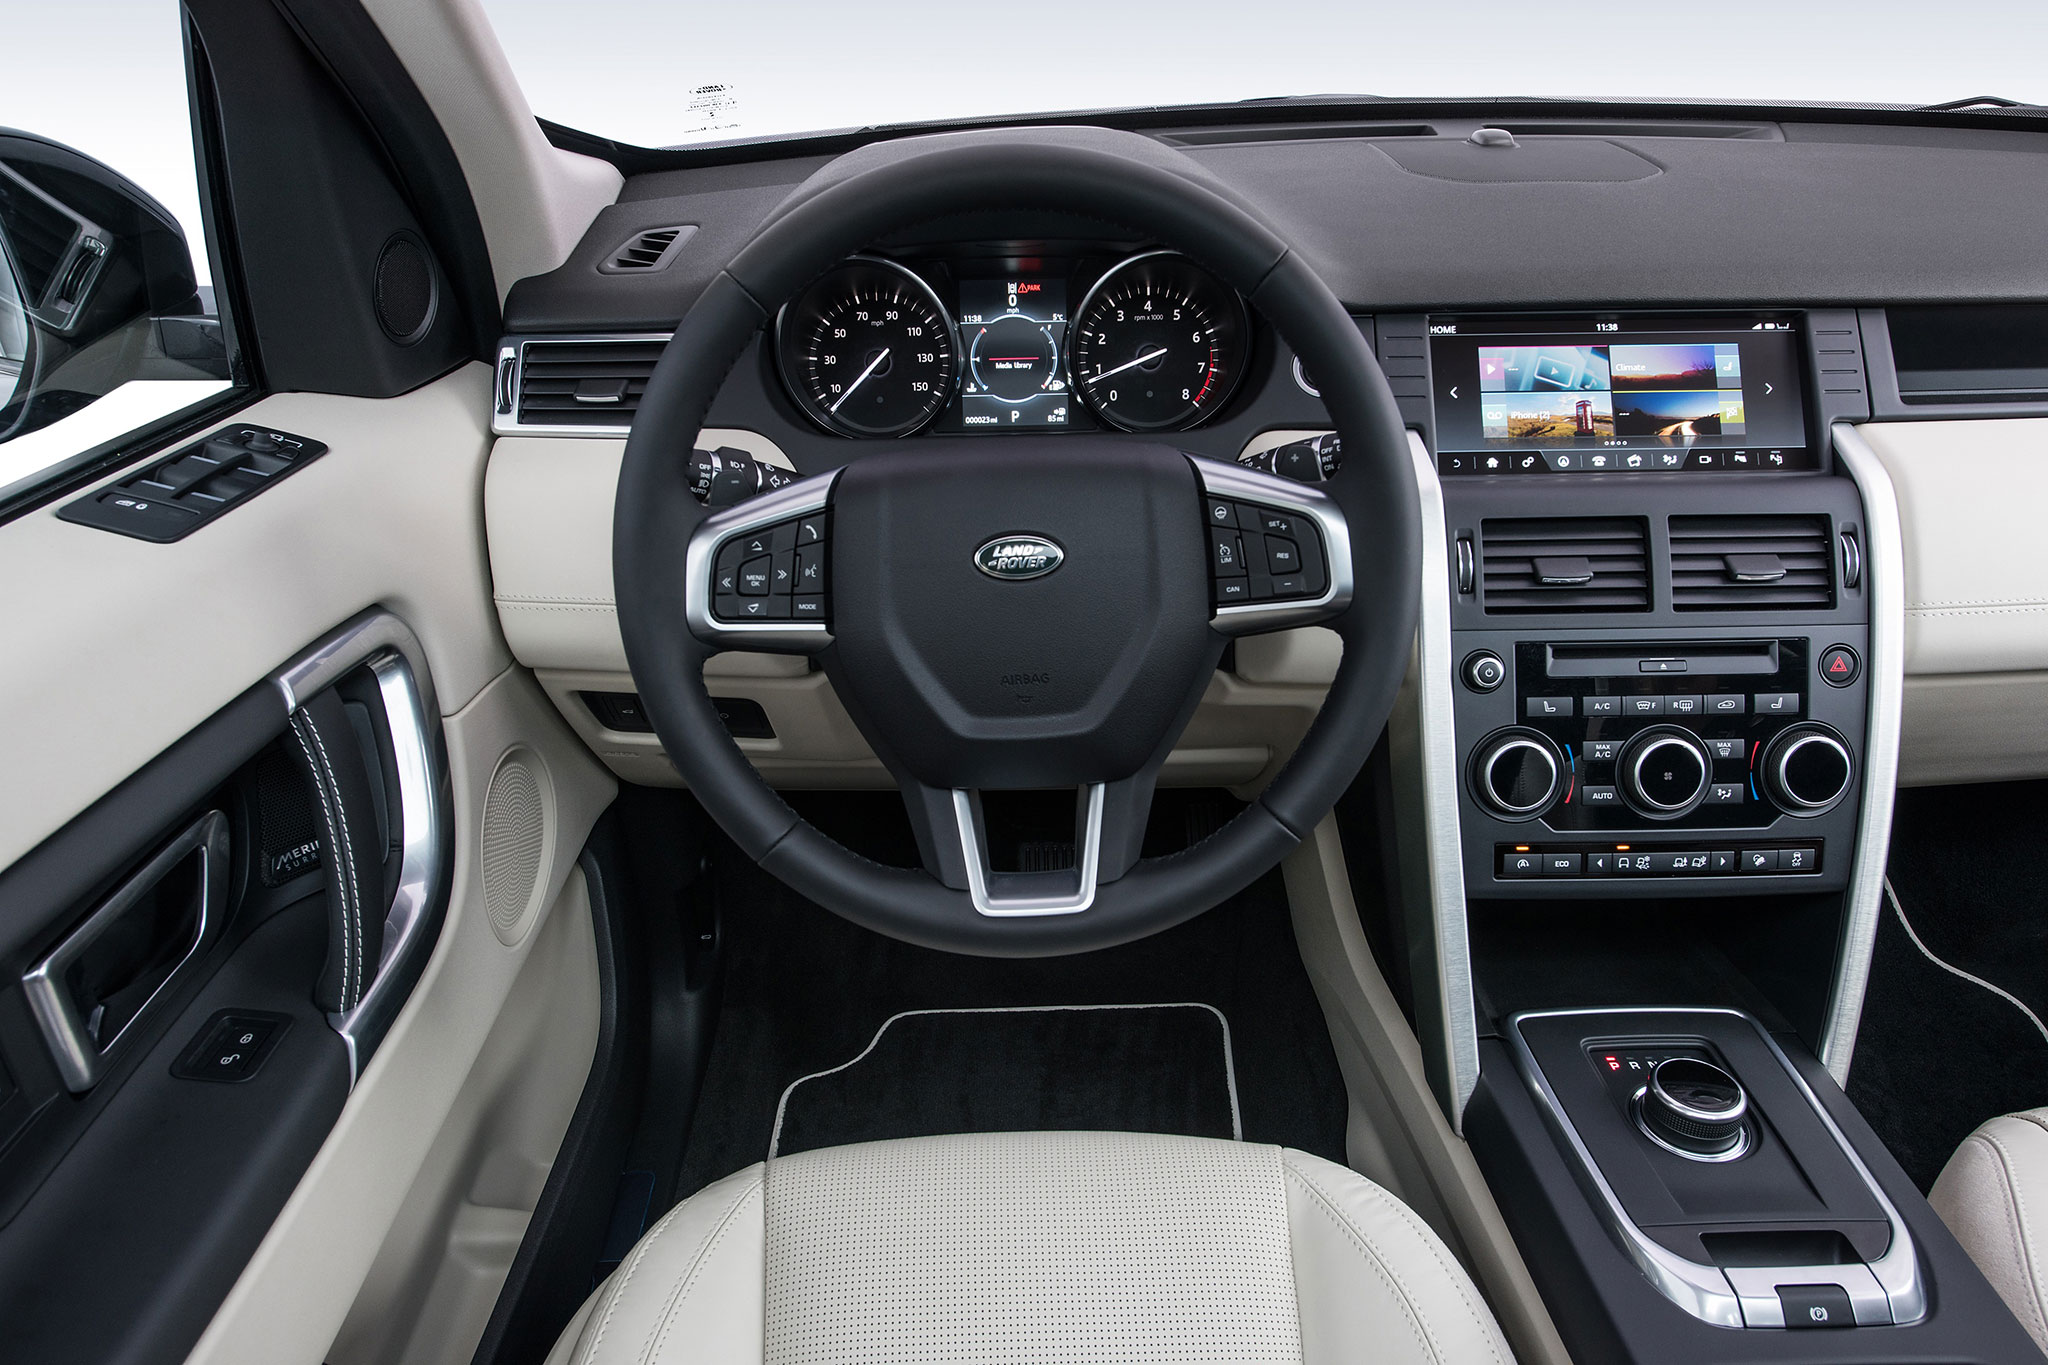 2017 Land Rover Discovery Sport Gets New Tech and Styling Updates